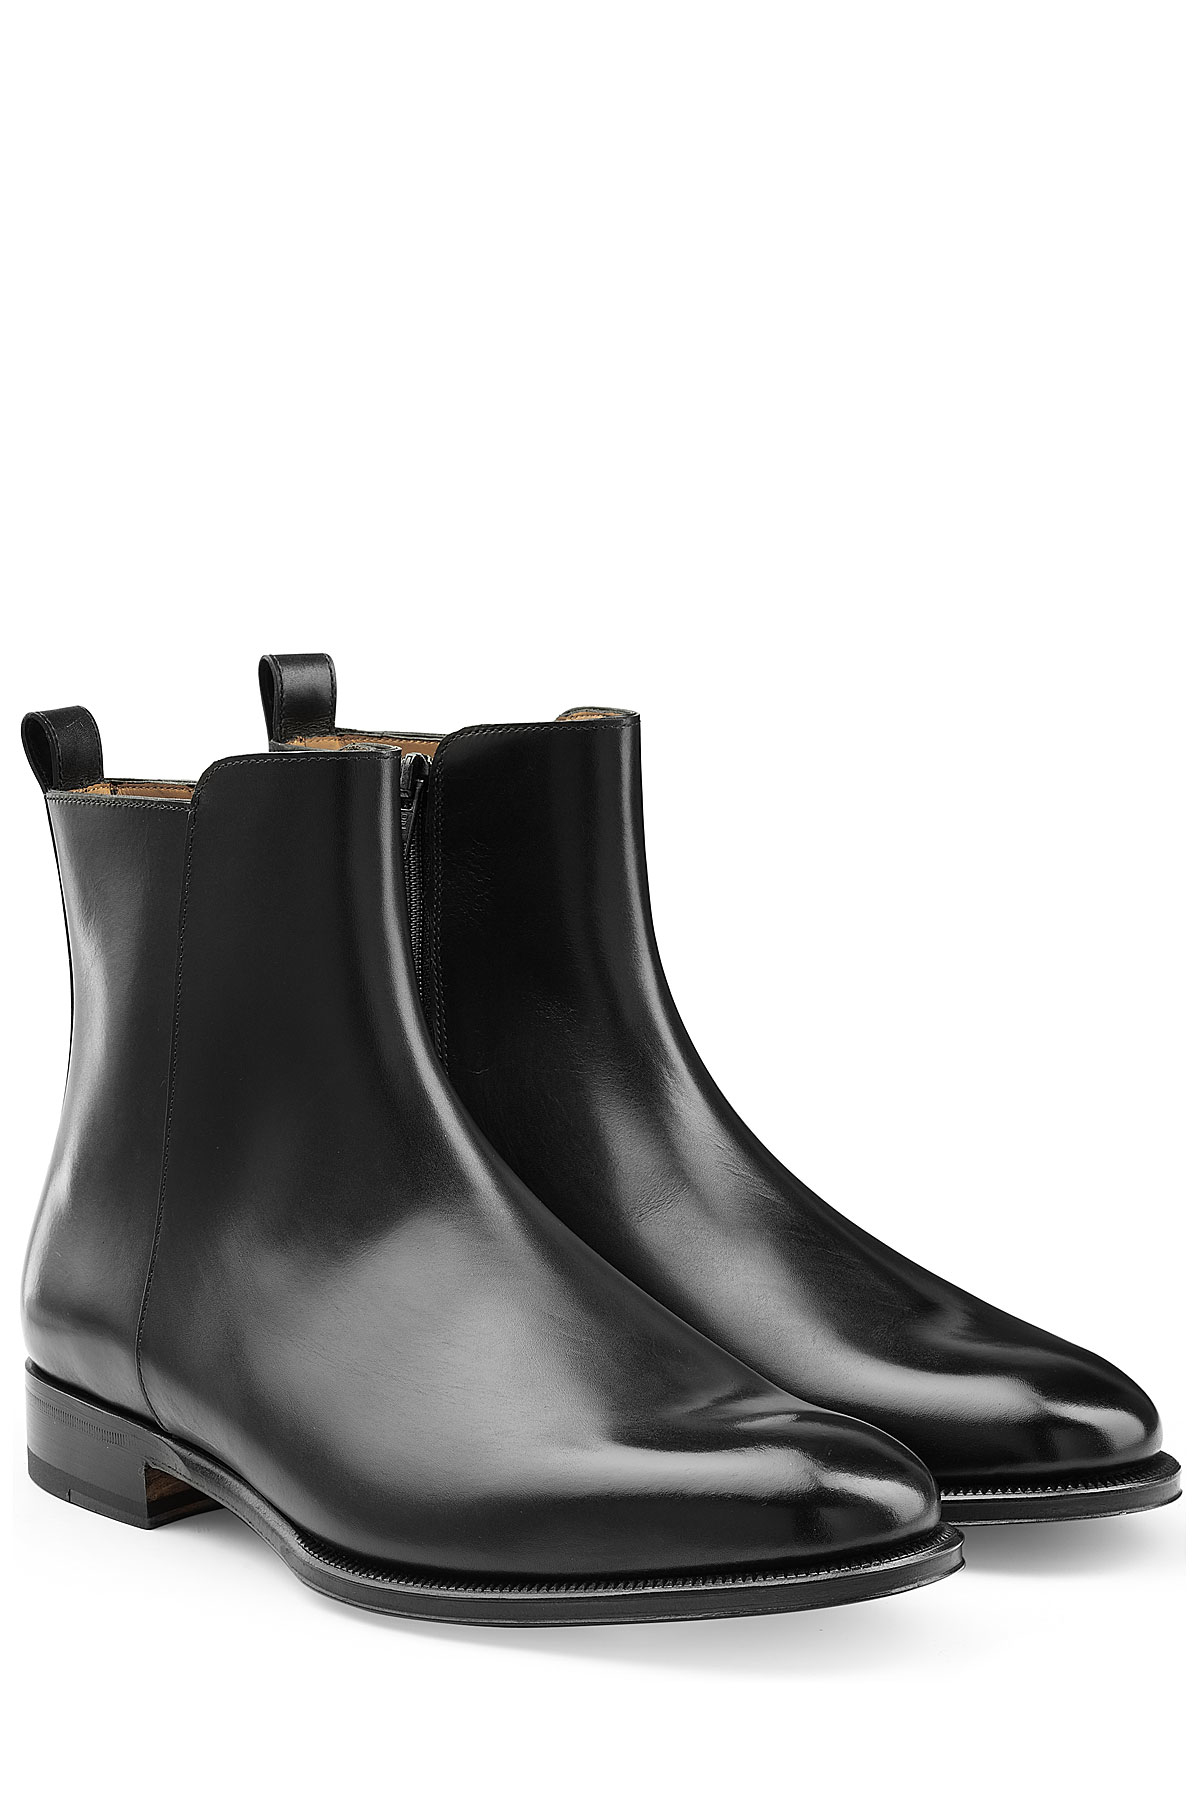 Valentino Leather Ankle Boots Black In Black For Men Lyst